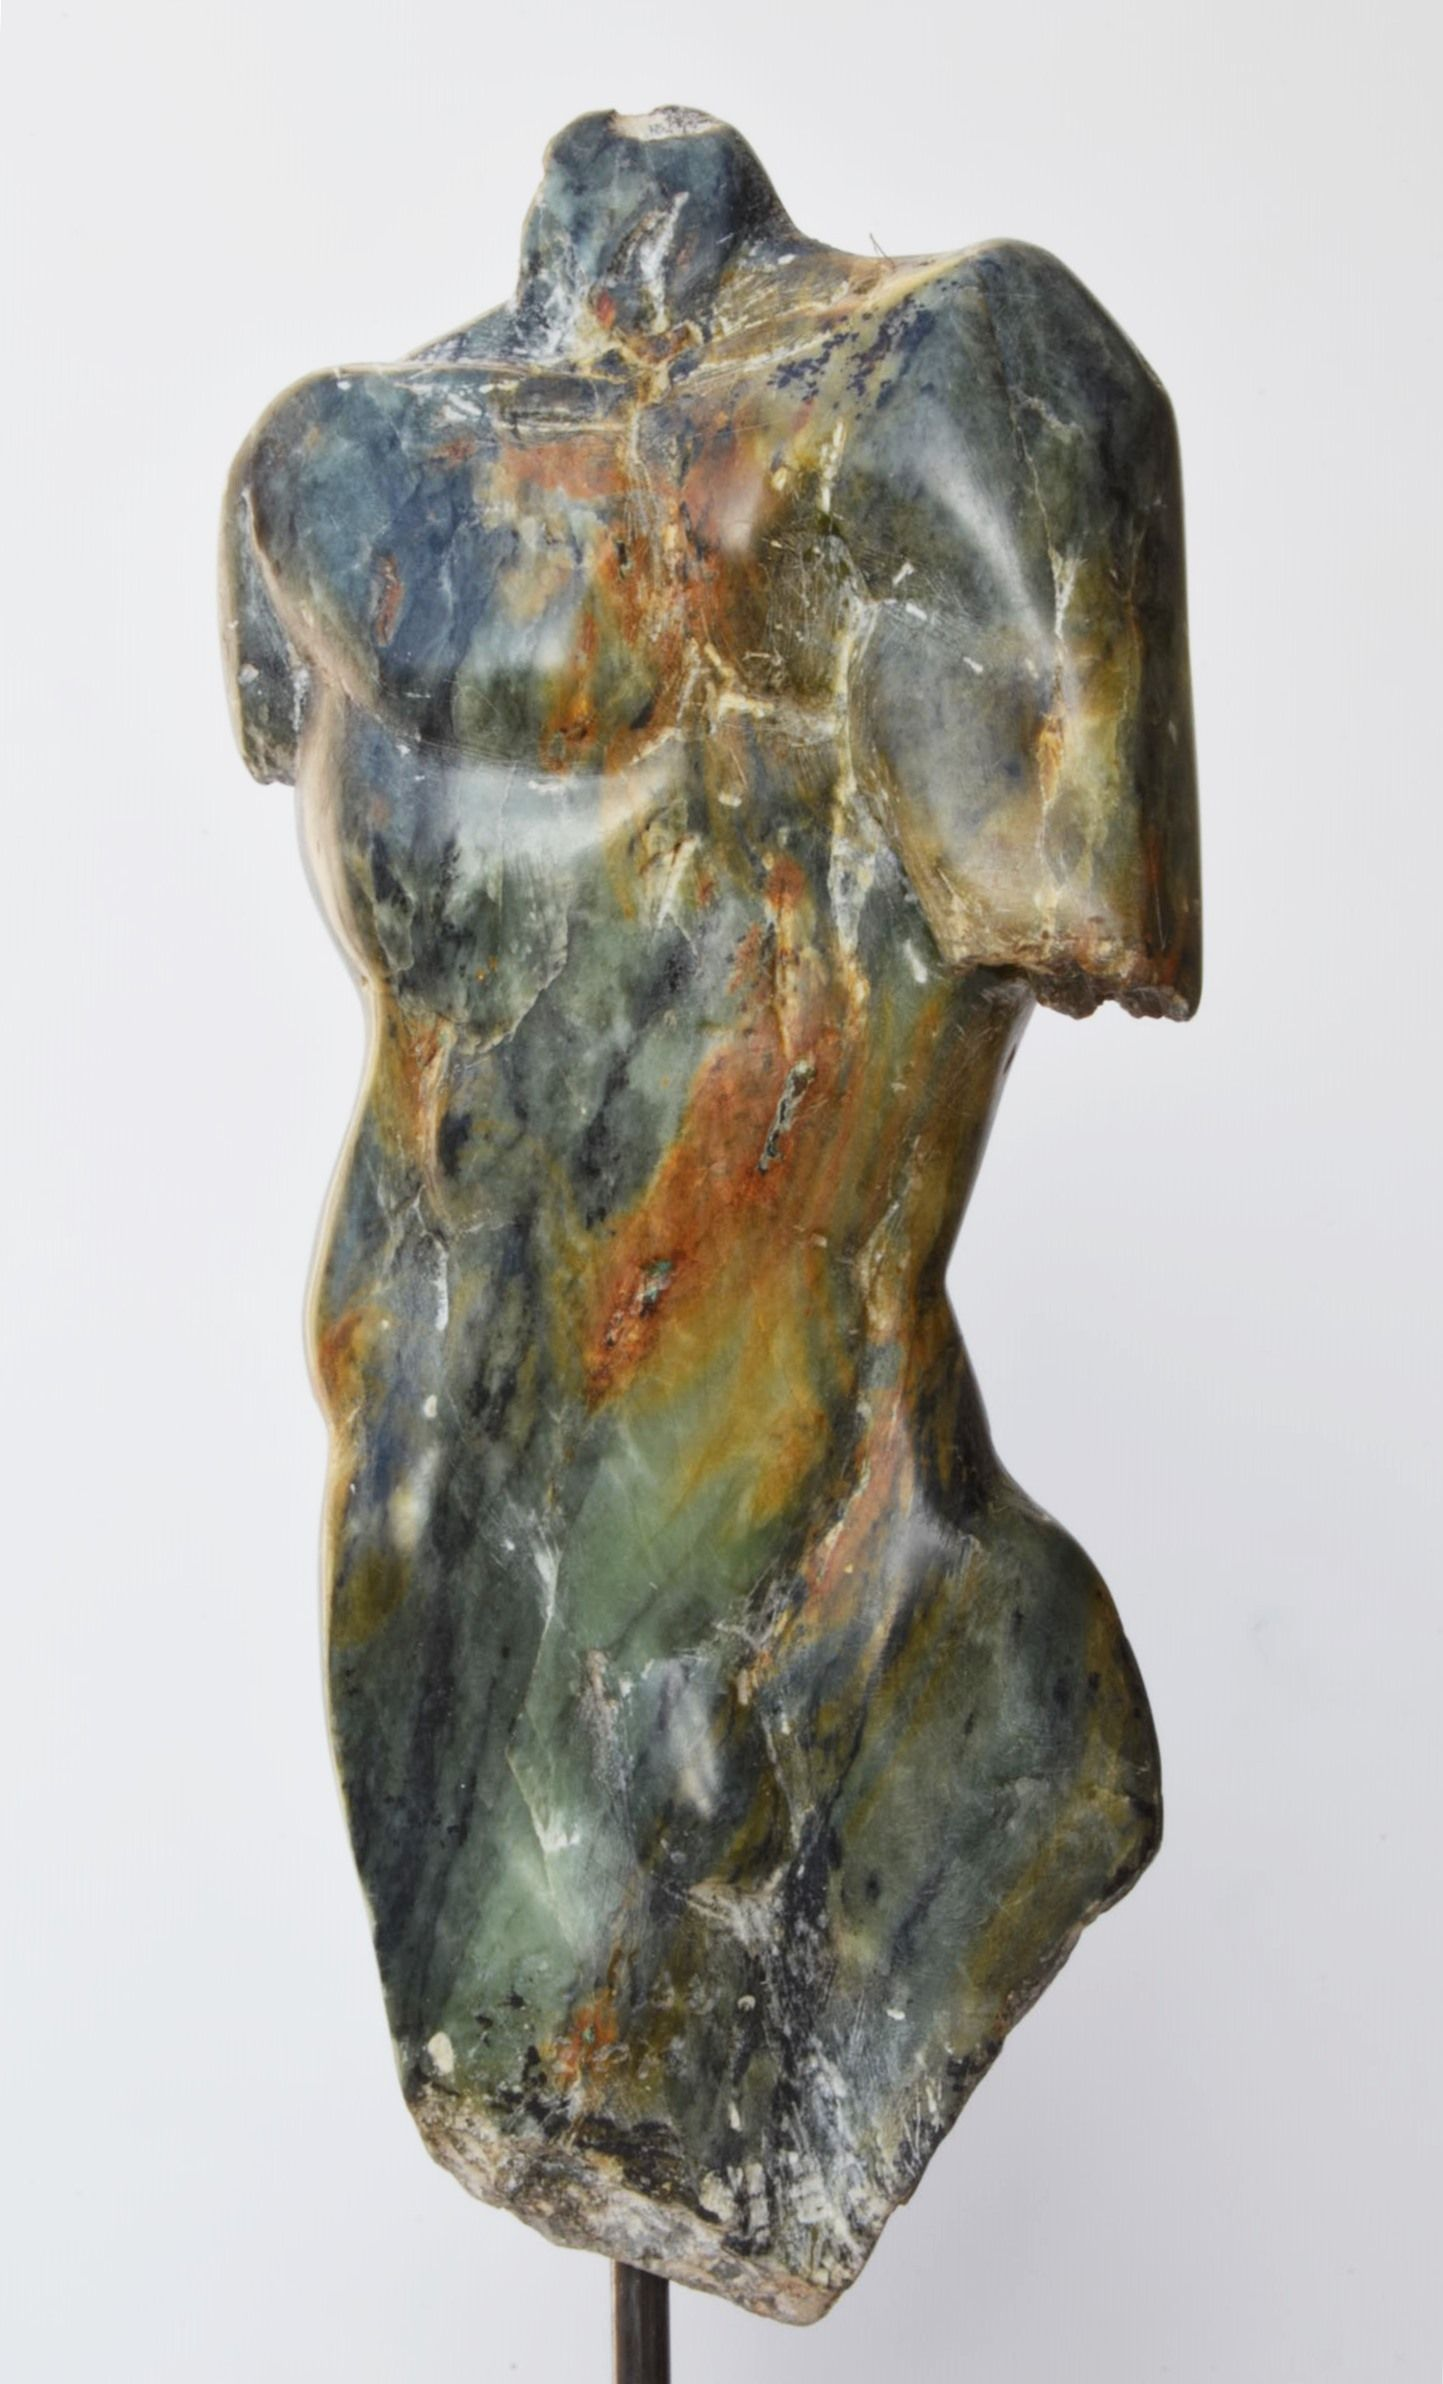 Torse d'homme III,Yann Guillon,Sculpture